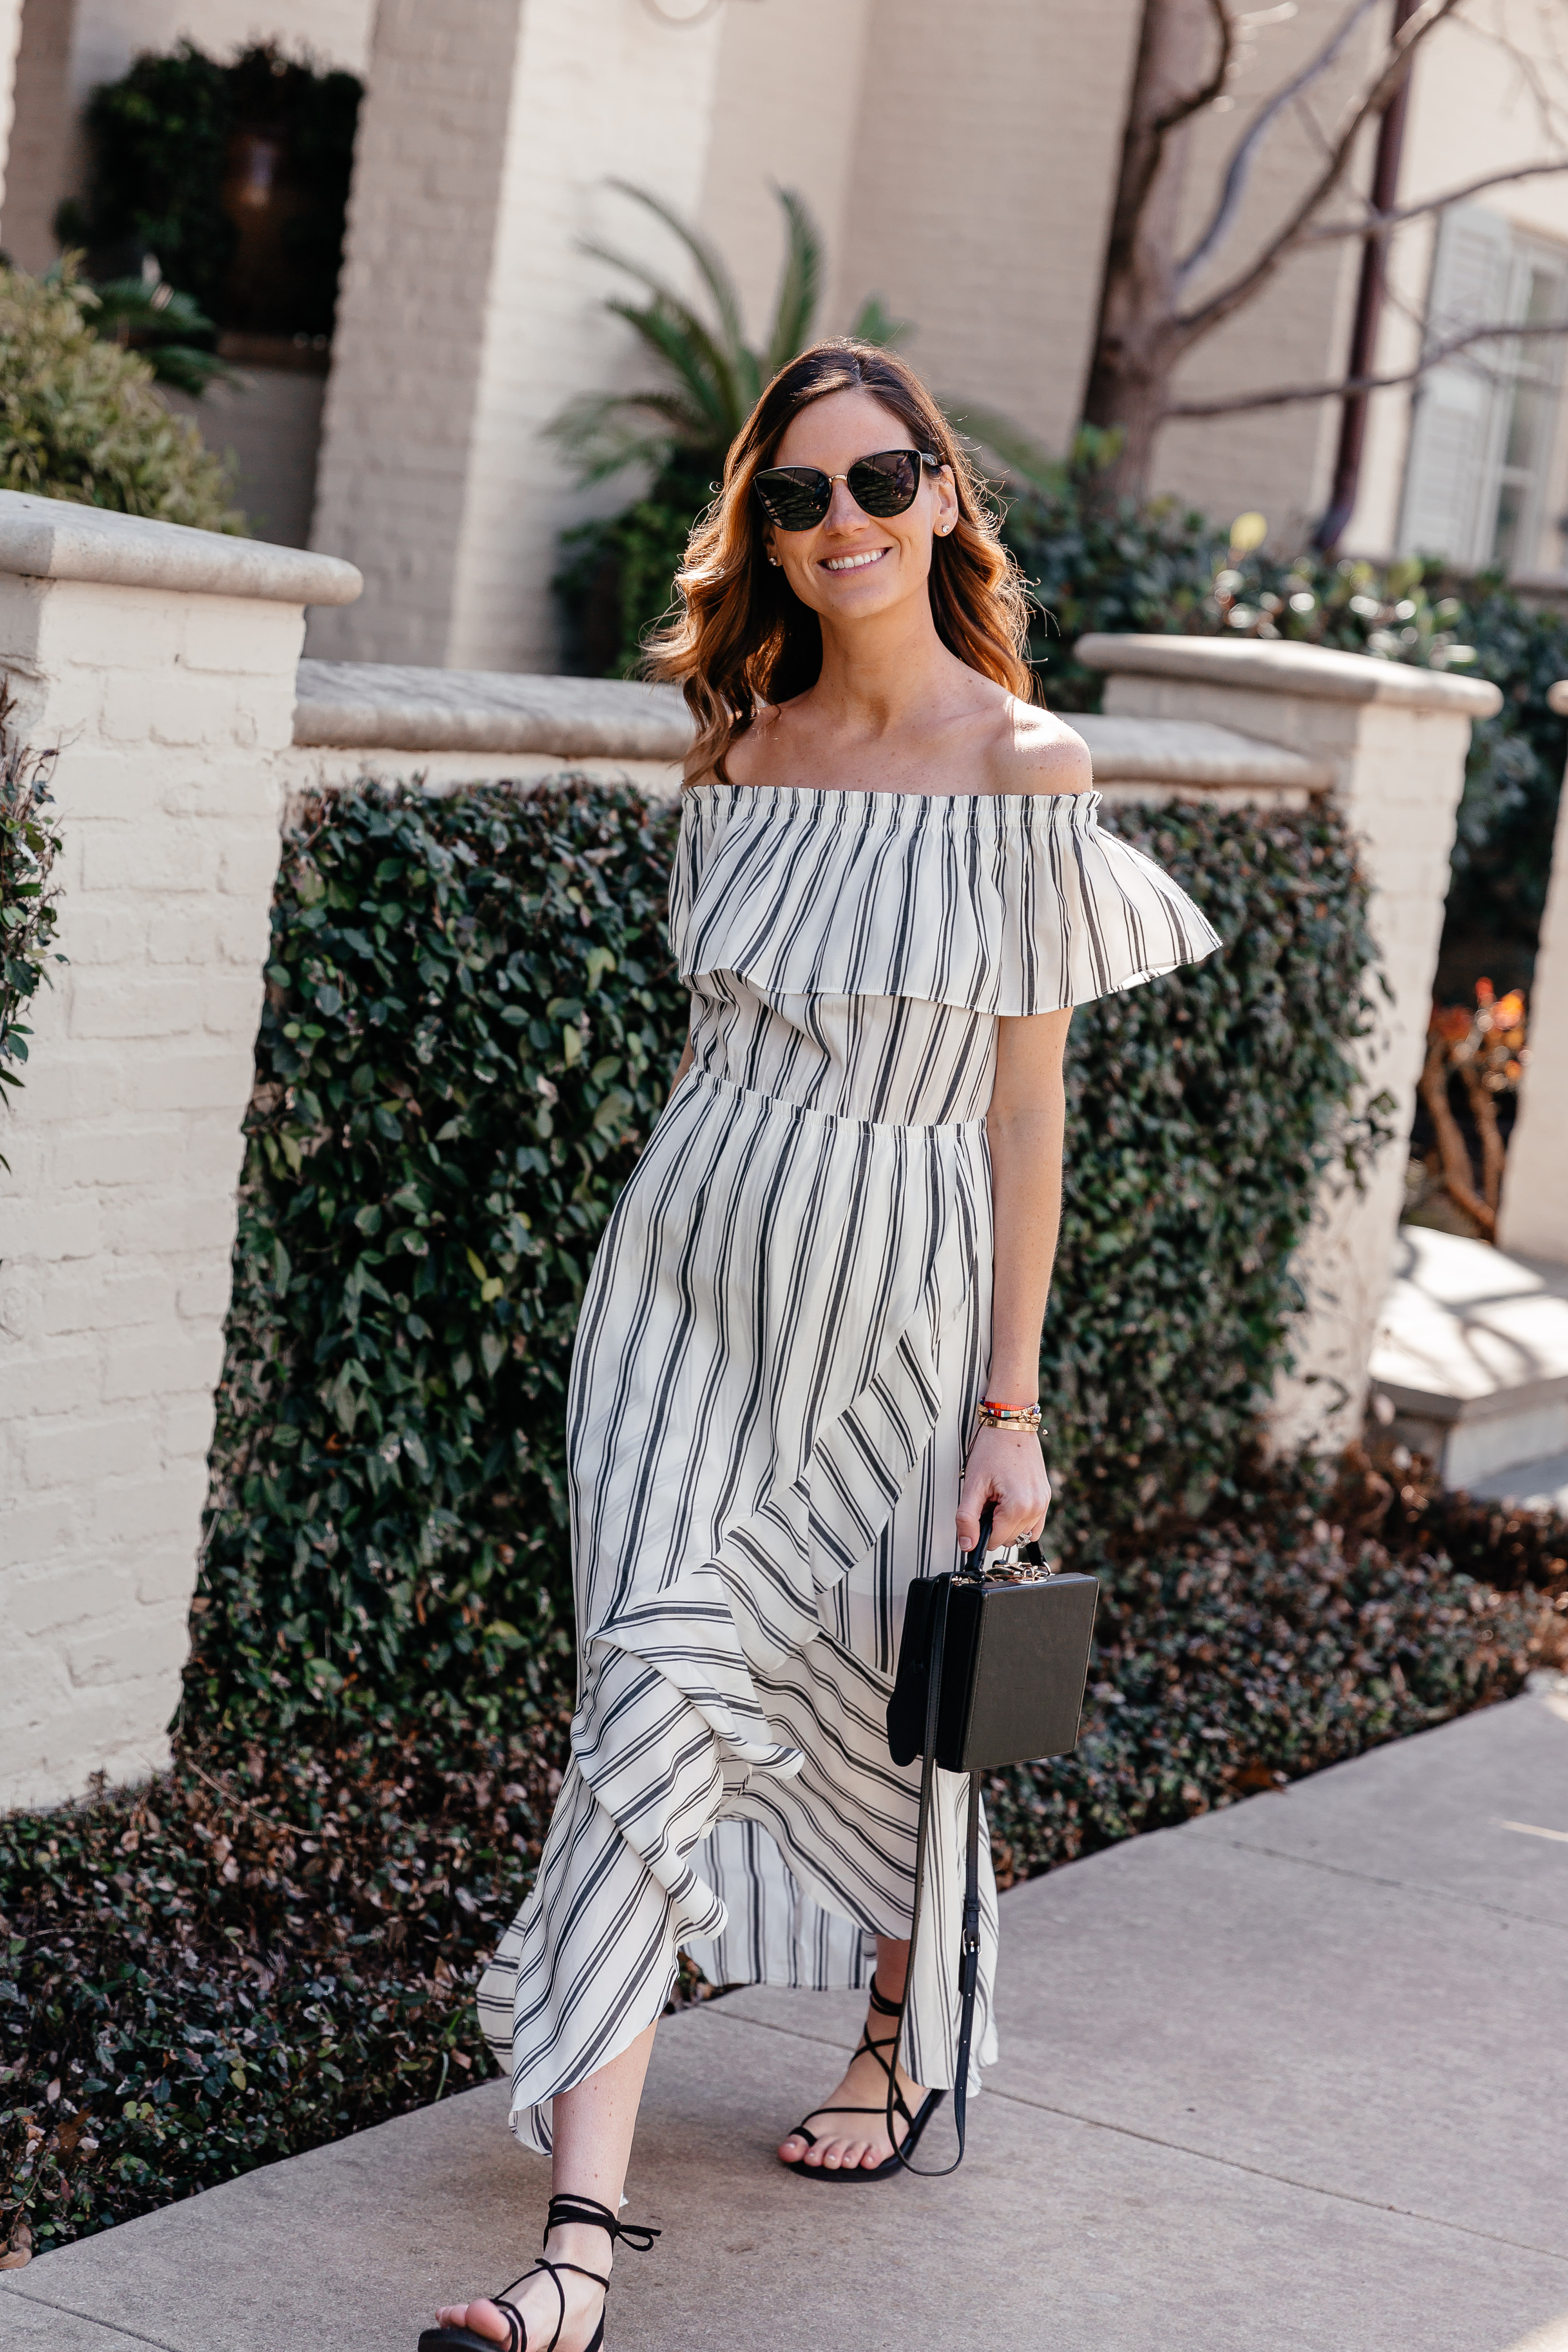 2e7939a7186c Dress  Striped Off The Shoulder Maxi Dress  also avail in black     Shoes   Lace Up Sandals  Under  40!     Sunglasses  Privé Revaux  similar here – I  bought ...